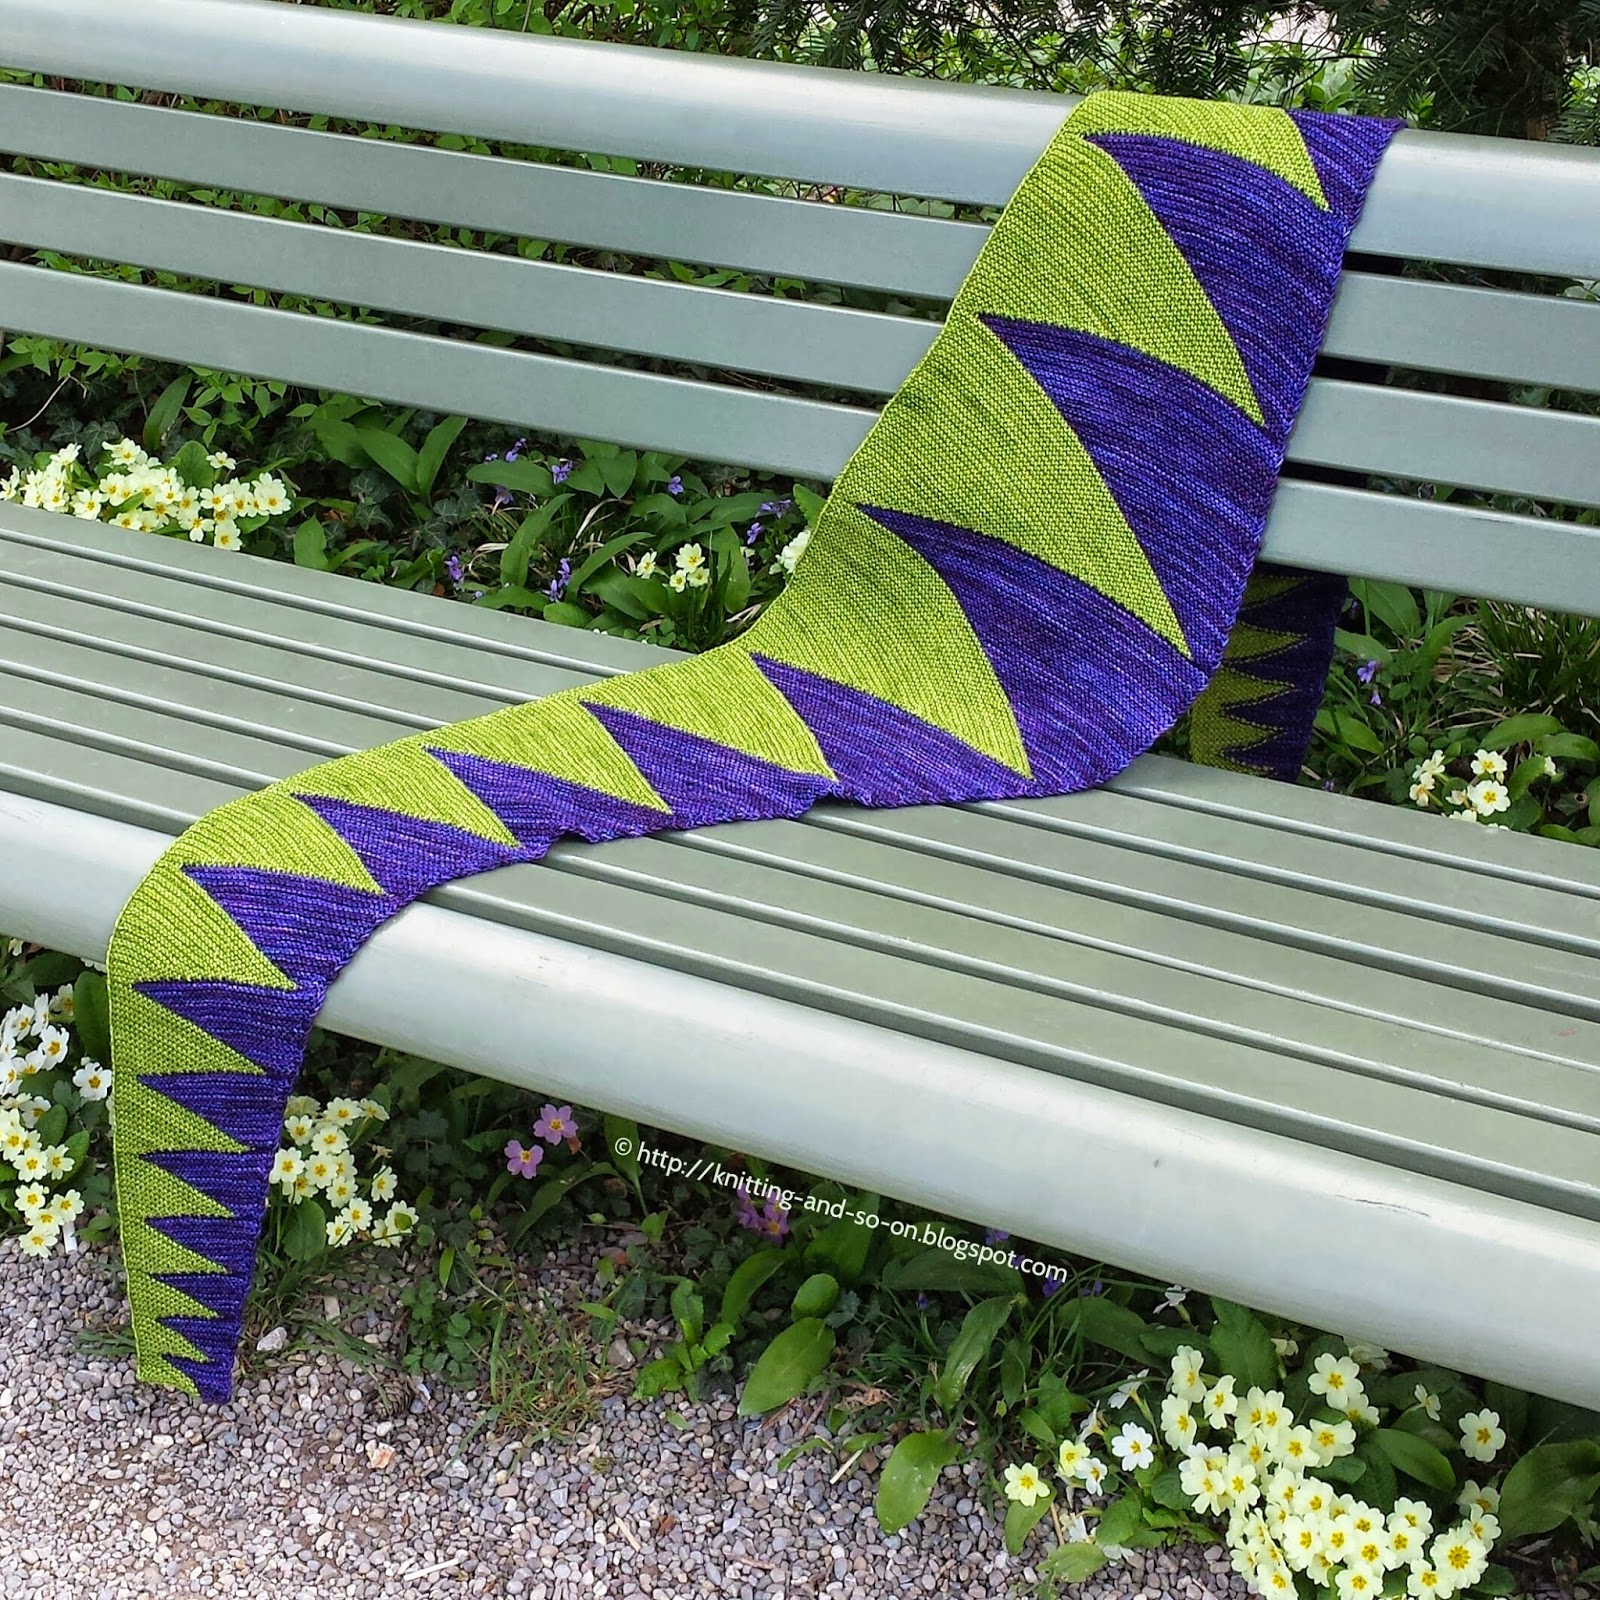 Free Knitting Pattern: Monster Tooth Scarf (http://knitting-and-so-on.blogspot.ch/)